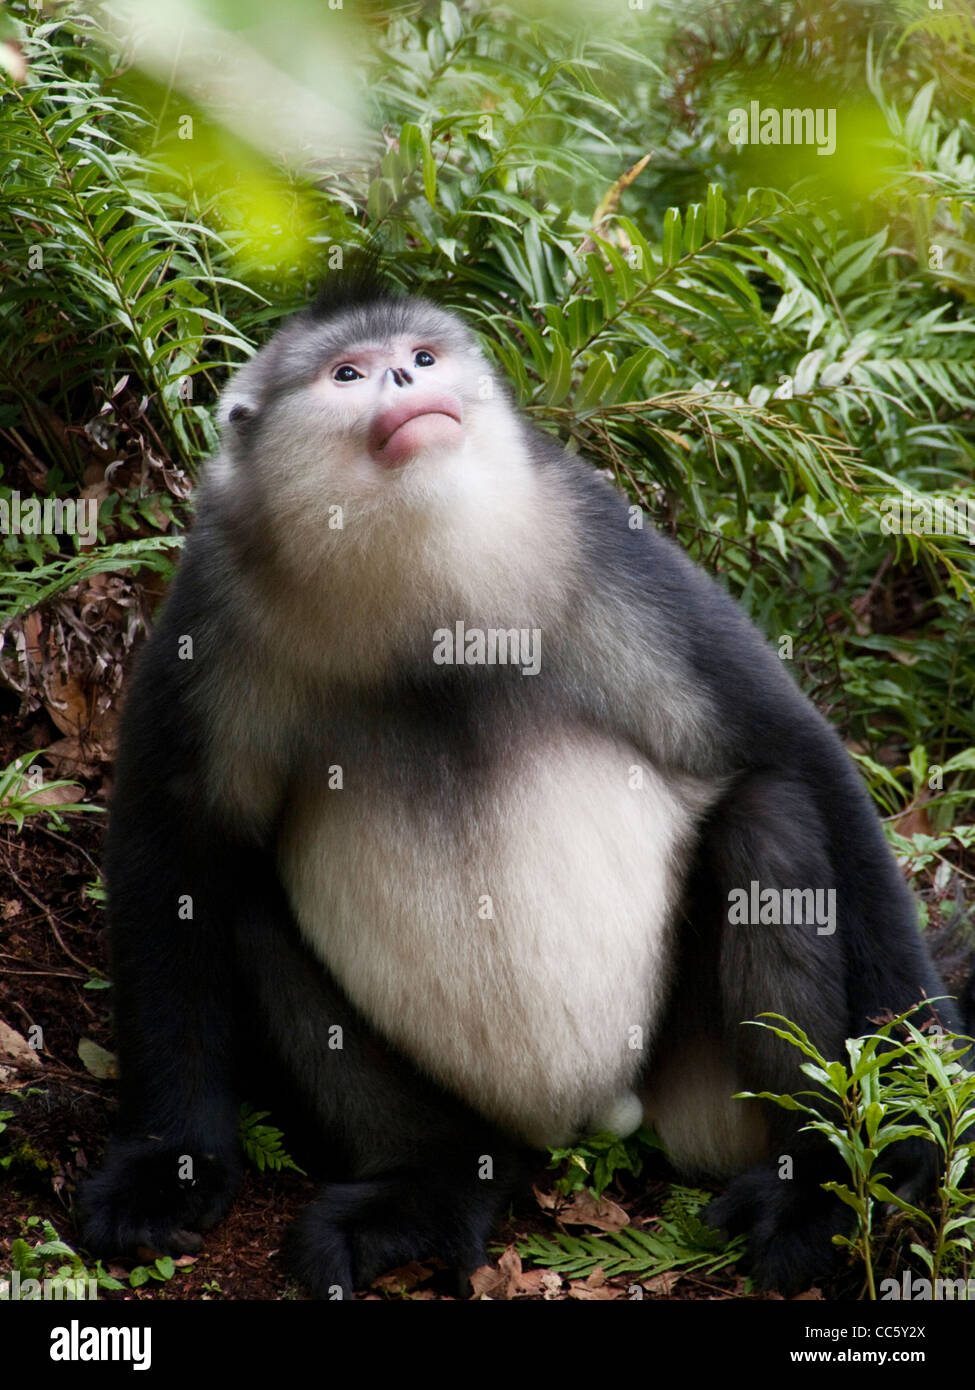 Black snub-nosed monkey, Yunling Mountains Nature Reserve, Nujiang, Yunnan , China - Stock Image